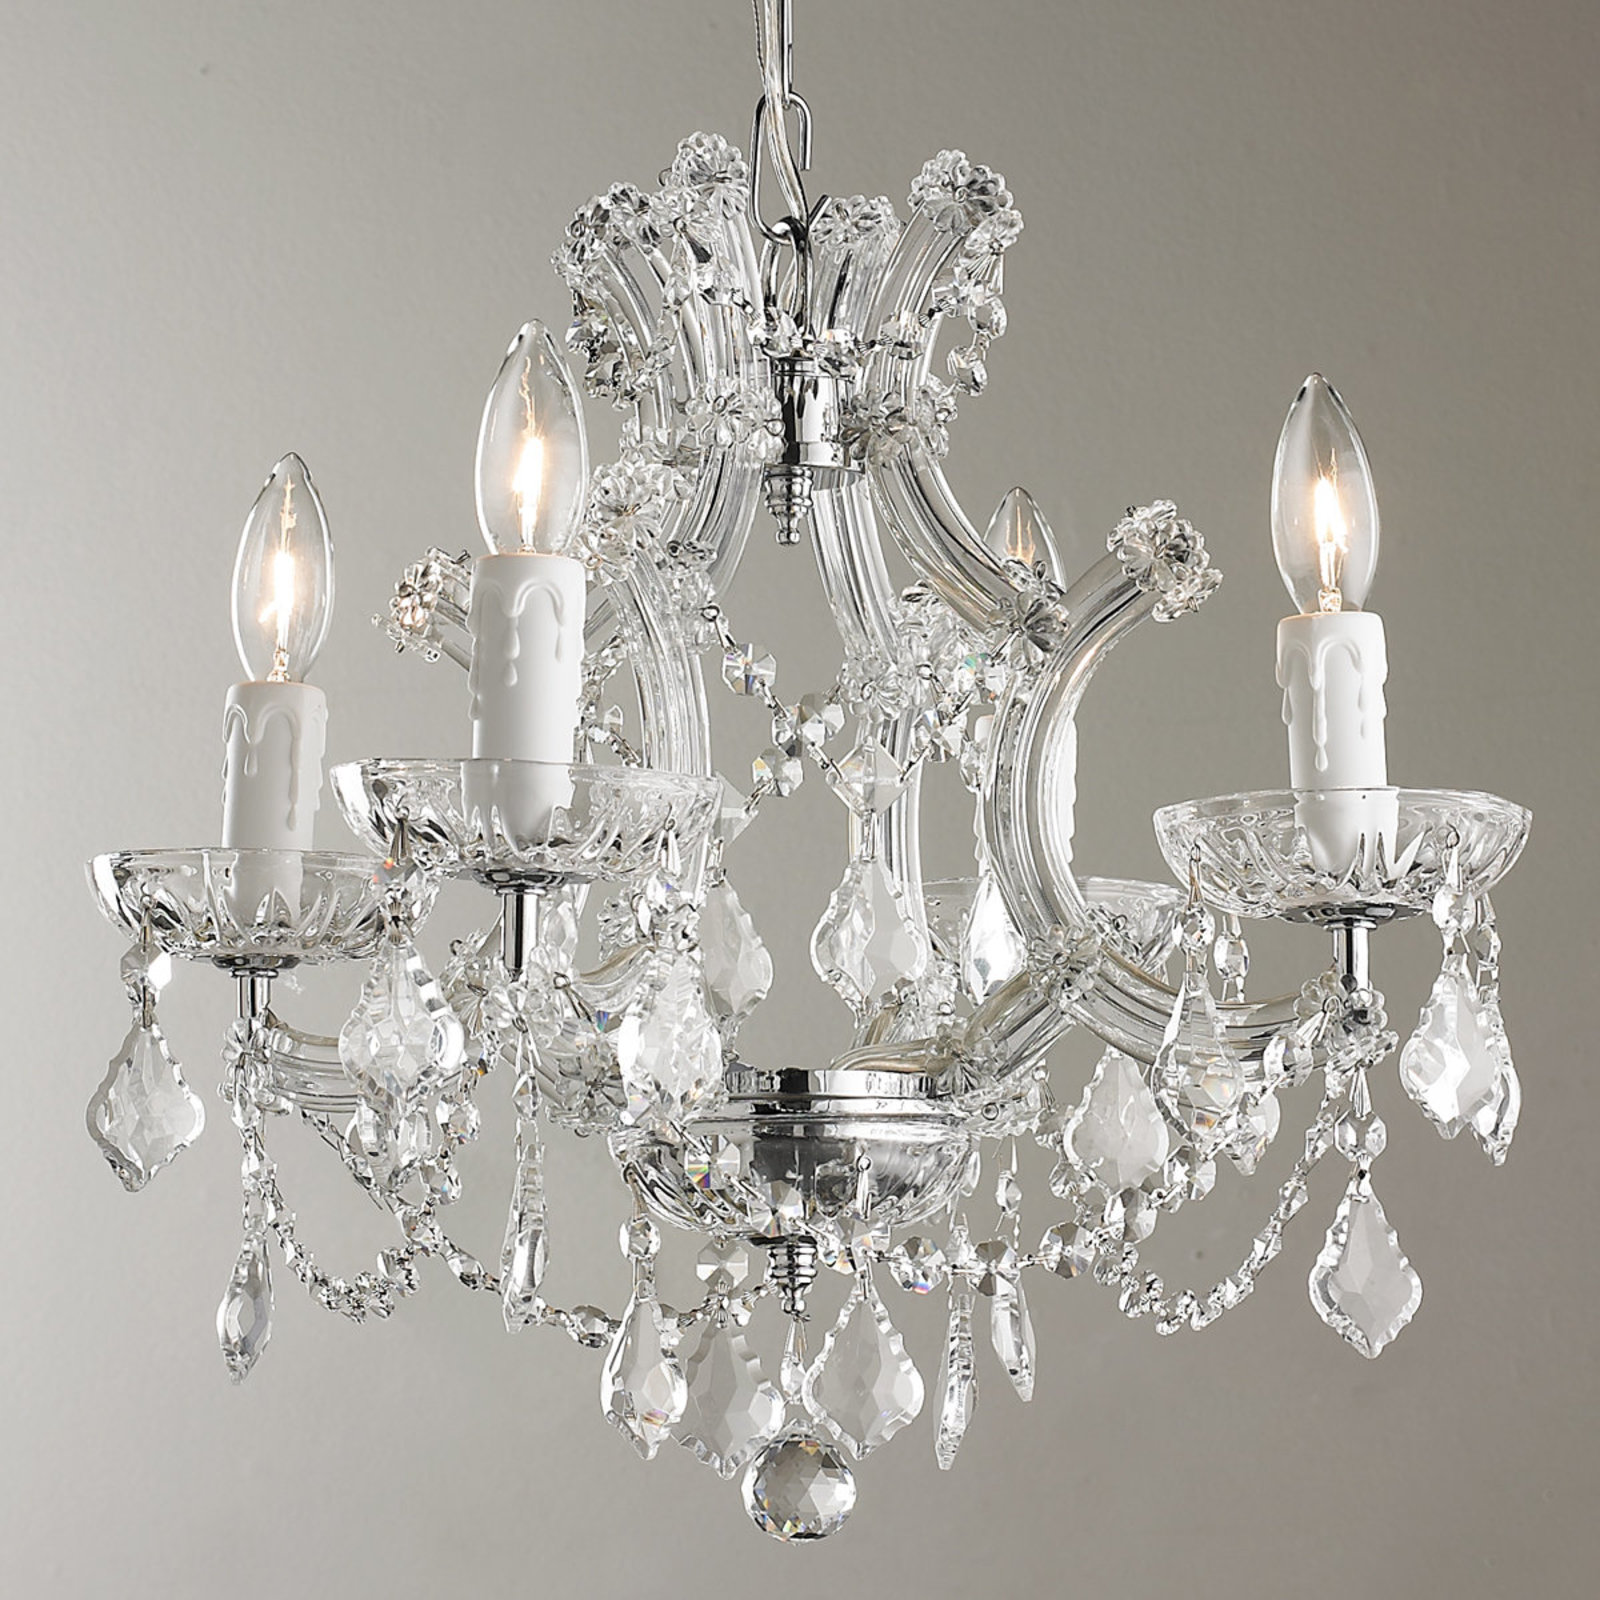 small chandeliers round crystal chandelier RQRWCFH